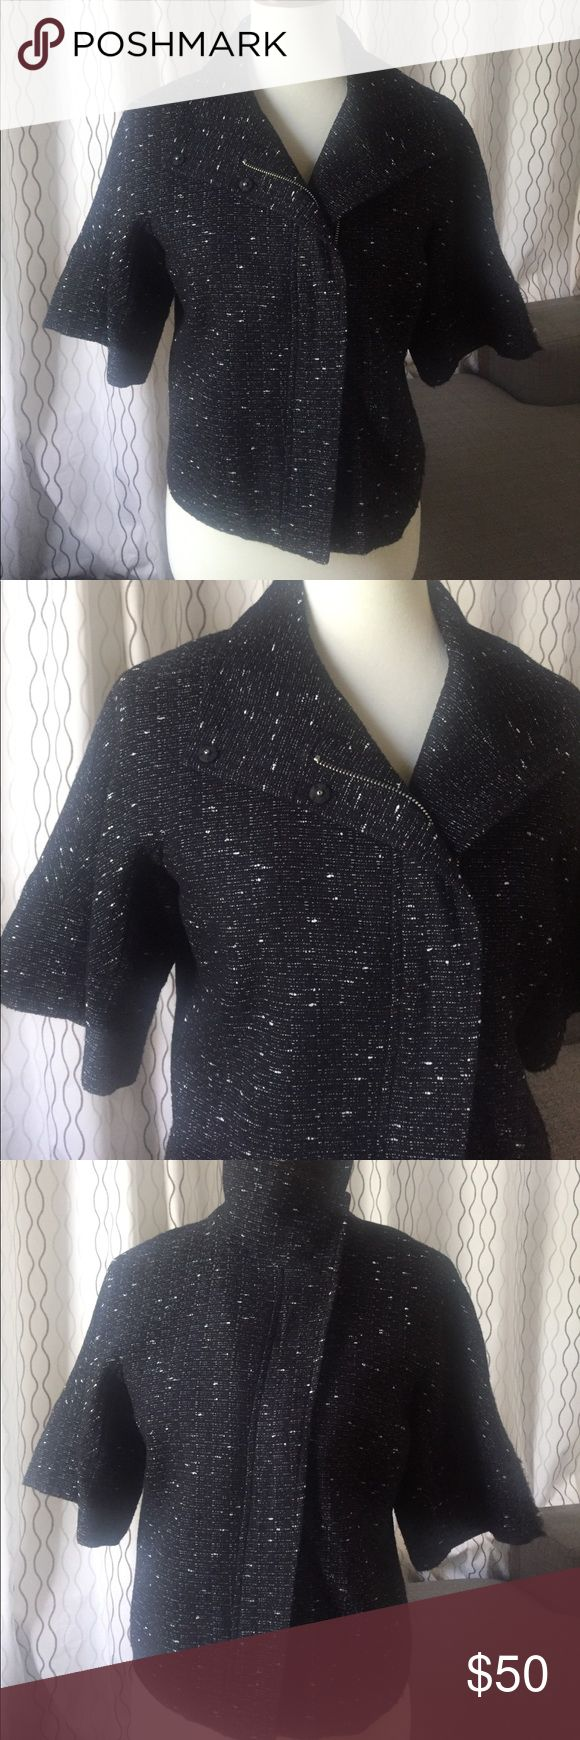 Kenneth Cole Short Sleeve Women's Tweed Jacket 6 This unique Kenneth Cole short sleeve jacket is a black and white speckled tweed(80% acrylic & 20% Polyester). The zipper and buttons allow for two different styles(see photos) when closed. The length is shorter, so the bottom will hit around the top of your hip bone. Pairs nicely with a white t-shirt and black boots. Size 6. Comes from a smoke free, pet free home. Kenneth Cole Jackets & Coats